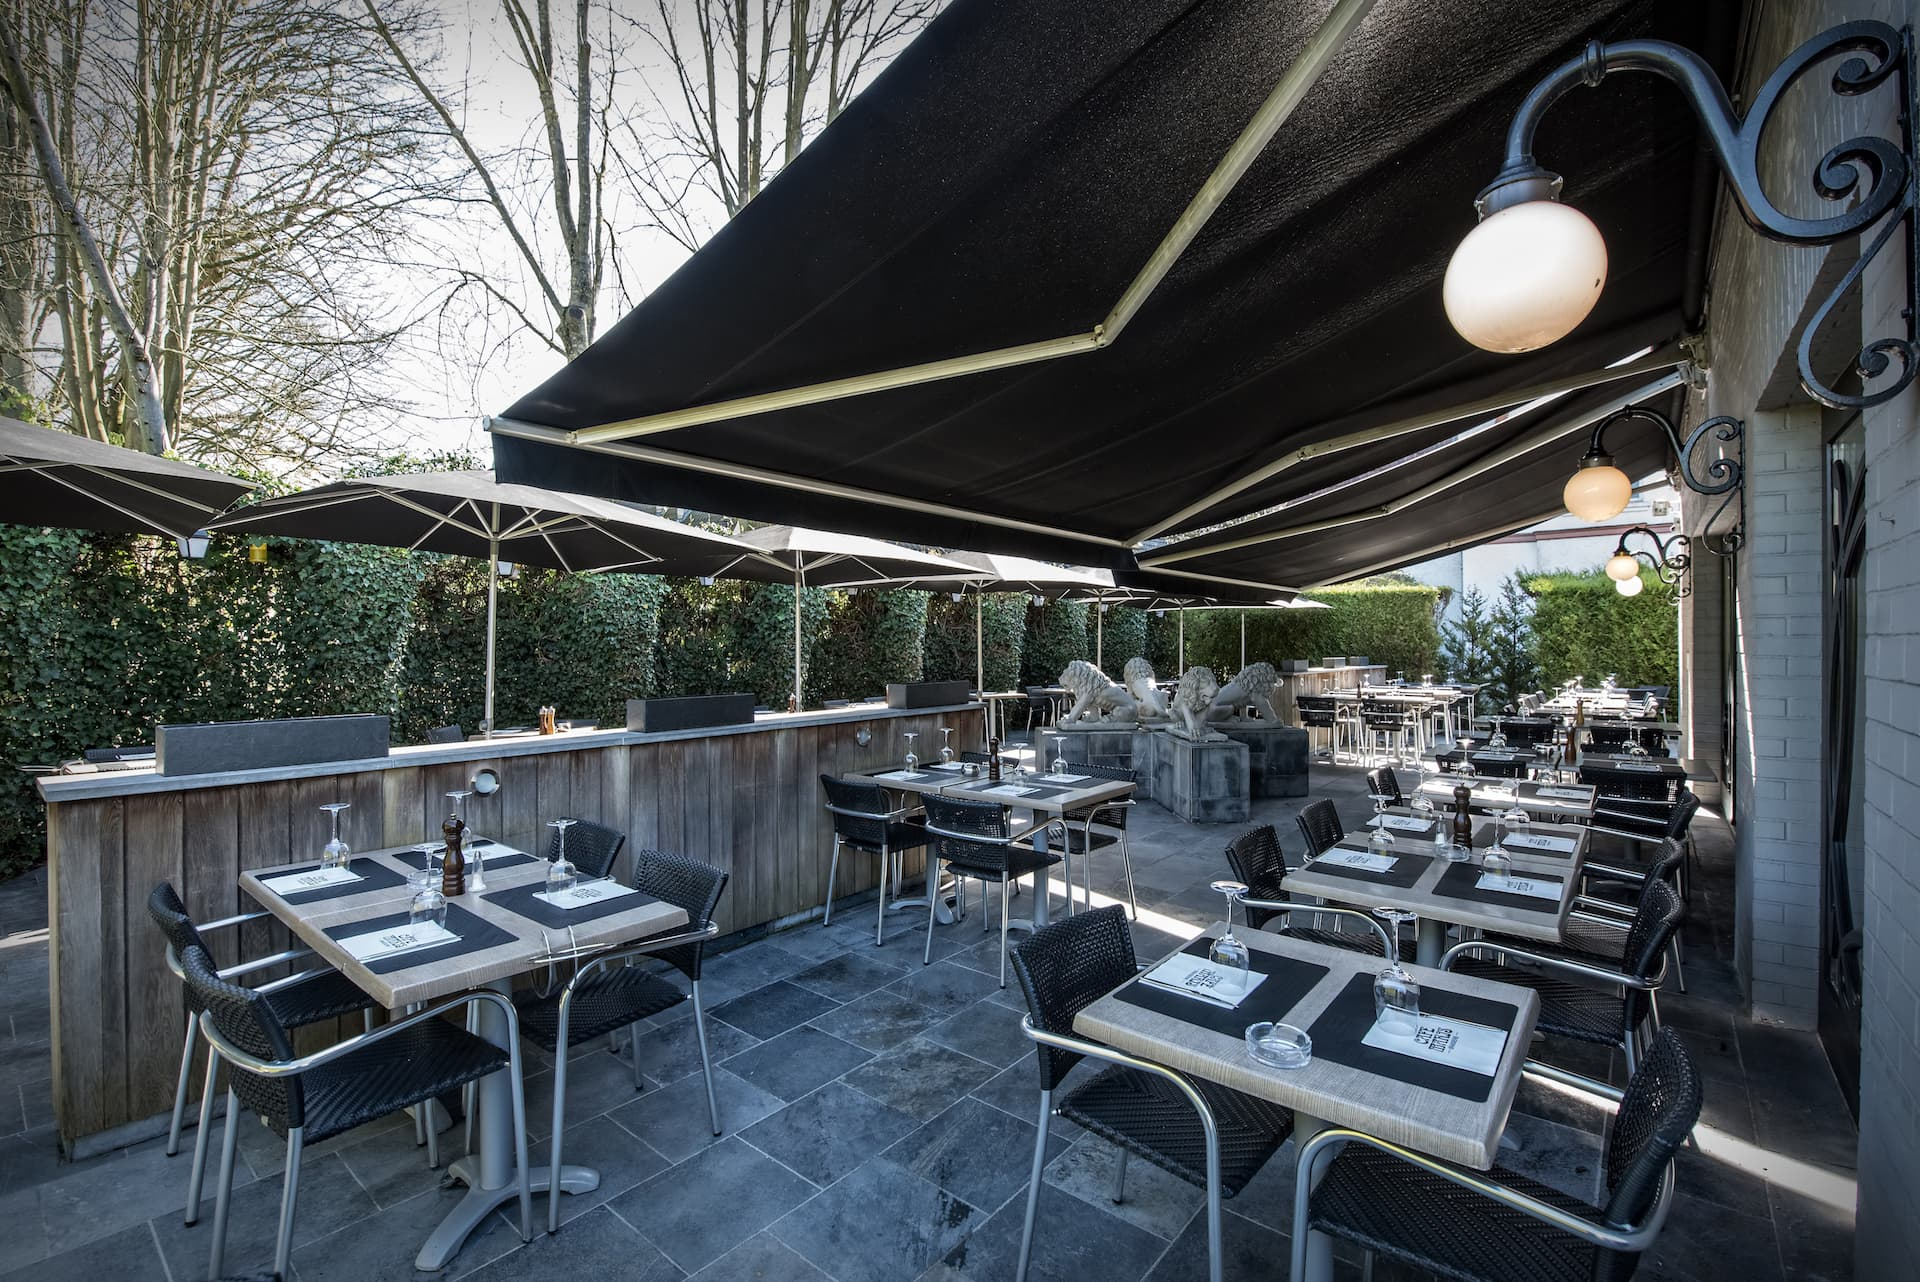 Cafe-Maris-Uccle-Brasserie-Fruits-de-Mer-6738-1